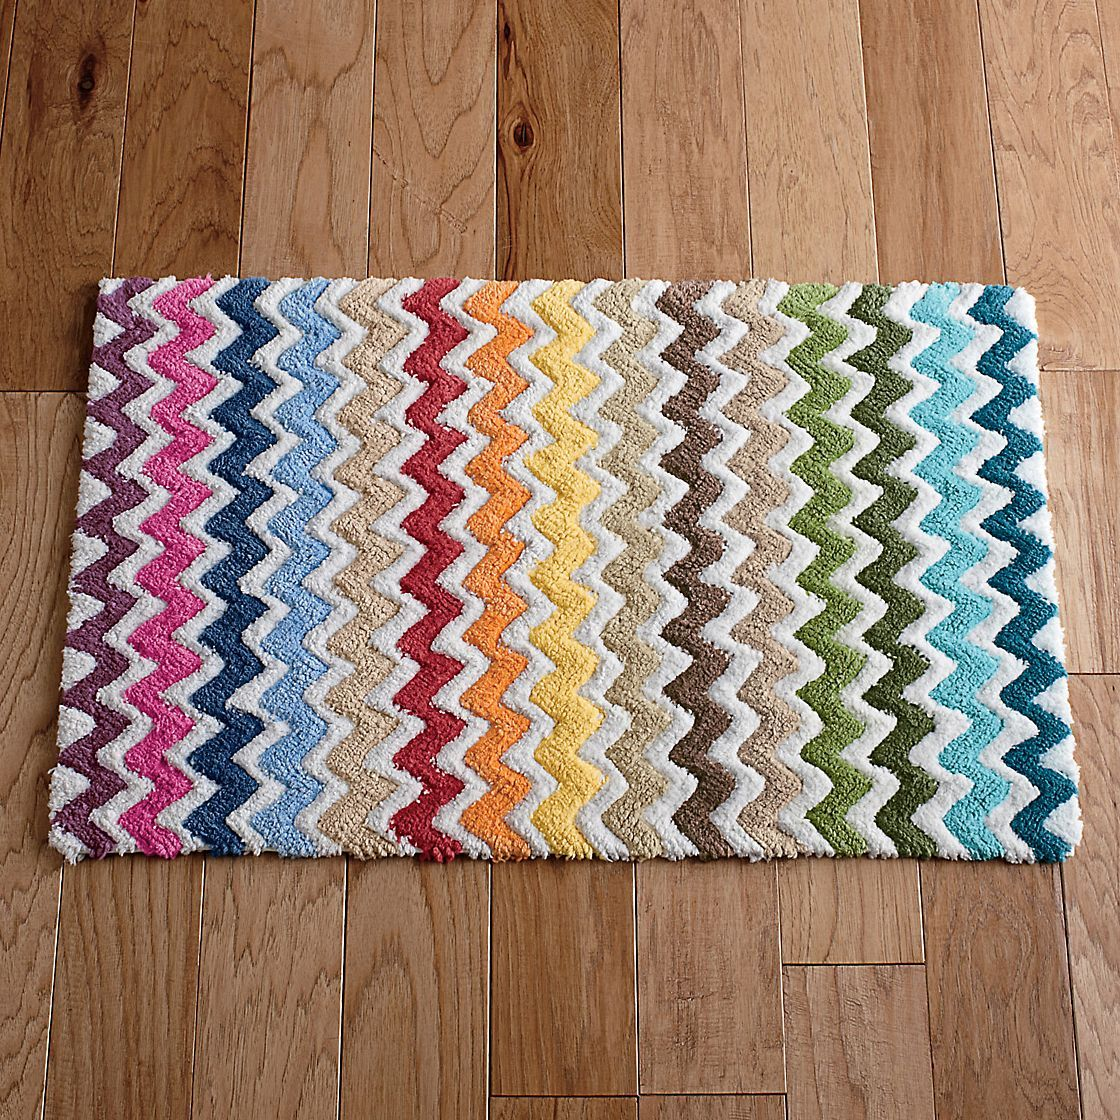 Using Bold Colors In The Bathroom: Bath Rugs, Zig Zag And Bold Colors